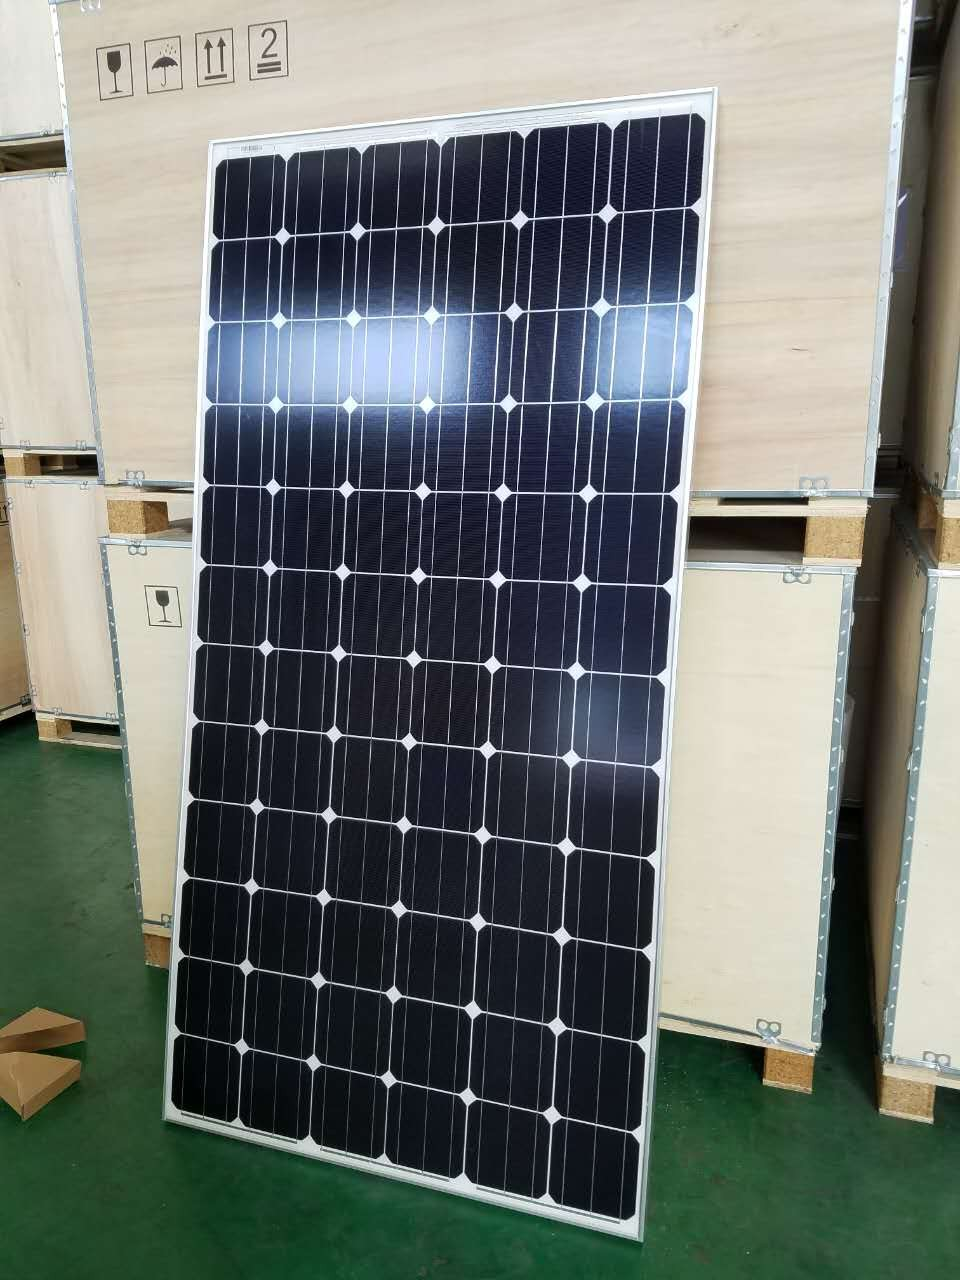 Canadia solar/Q-cell(Hanwha)/Yingli/Trina 310 watt solar panels, 310W mono solar panels , High performance 310W PV Modules